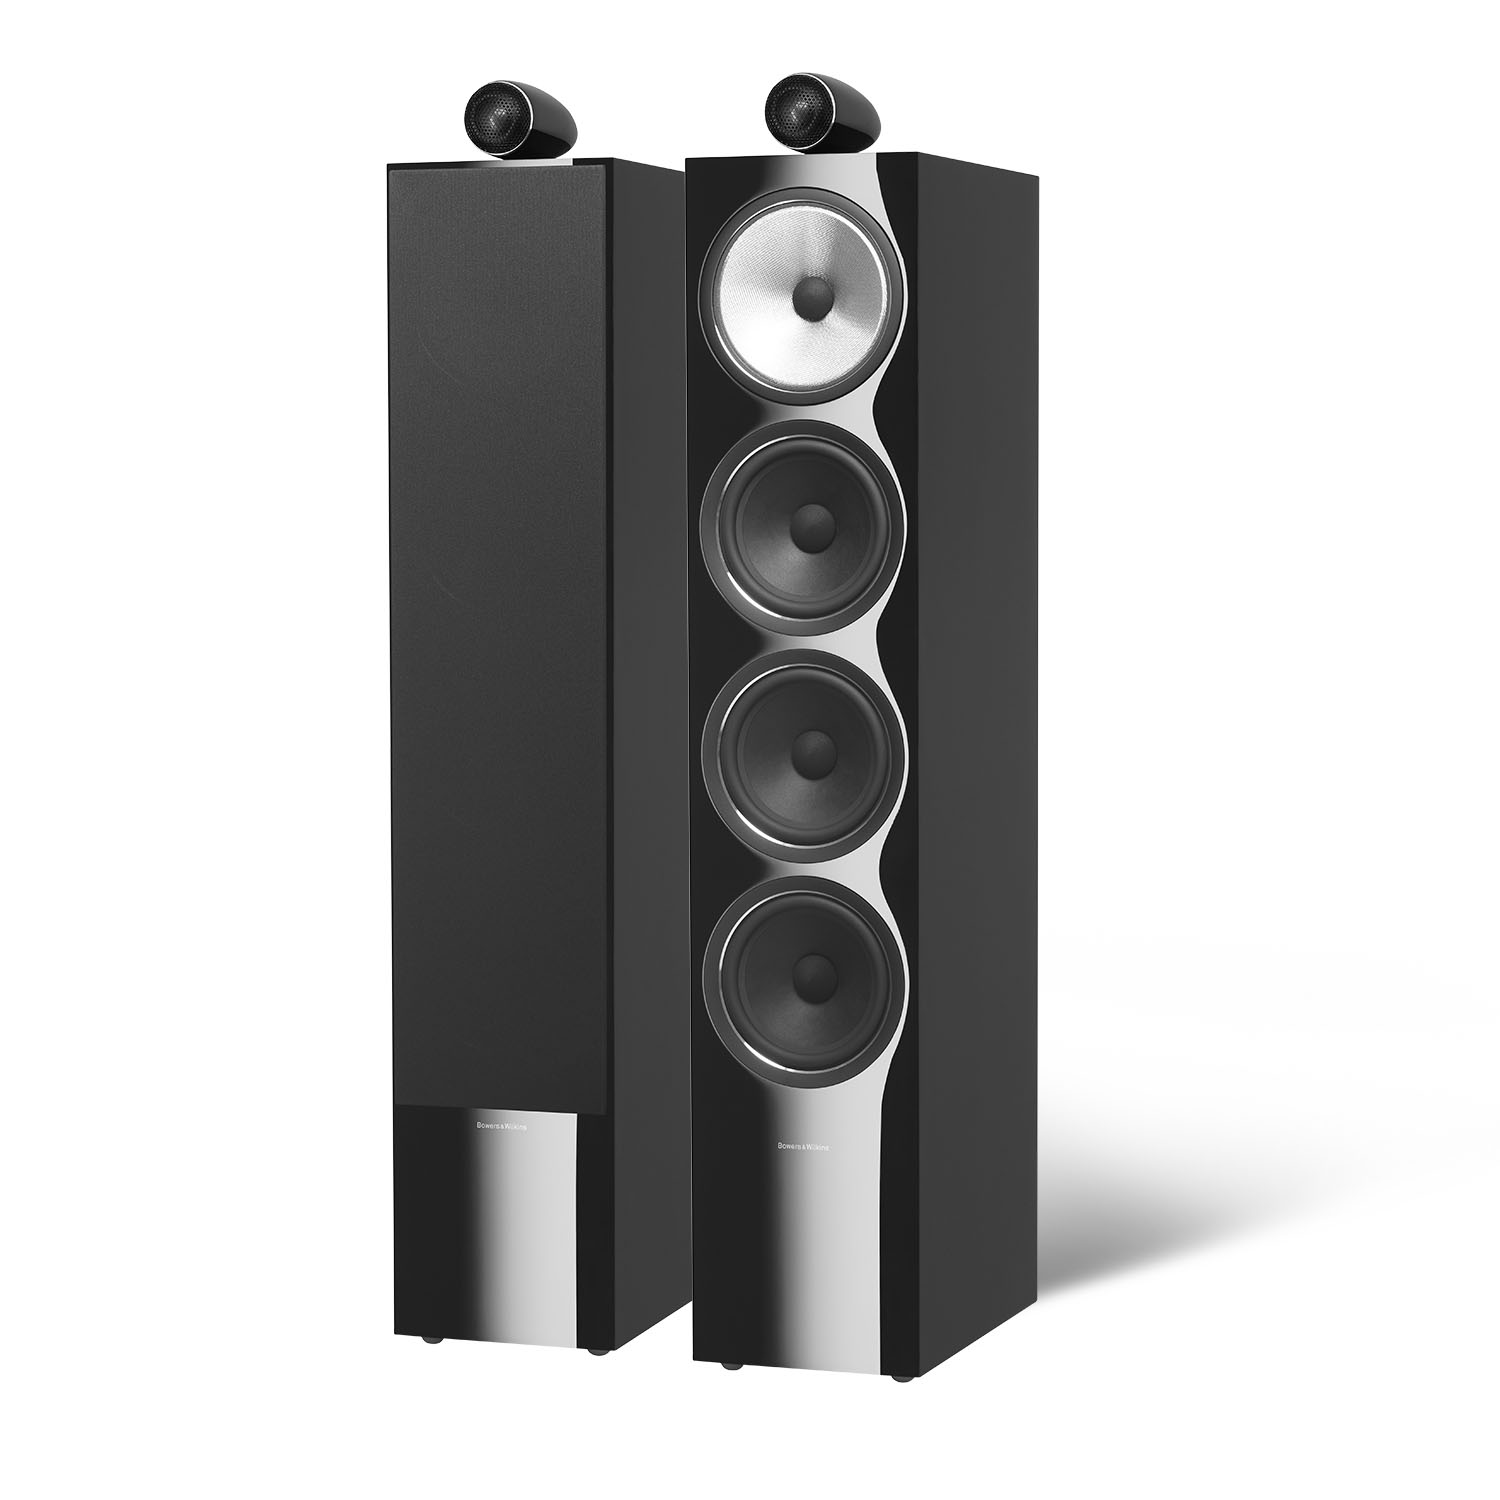 Bowers & Wilkins B&W 702 S2 luidspreker set